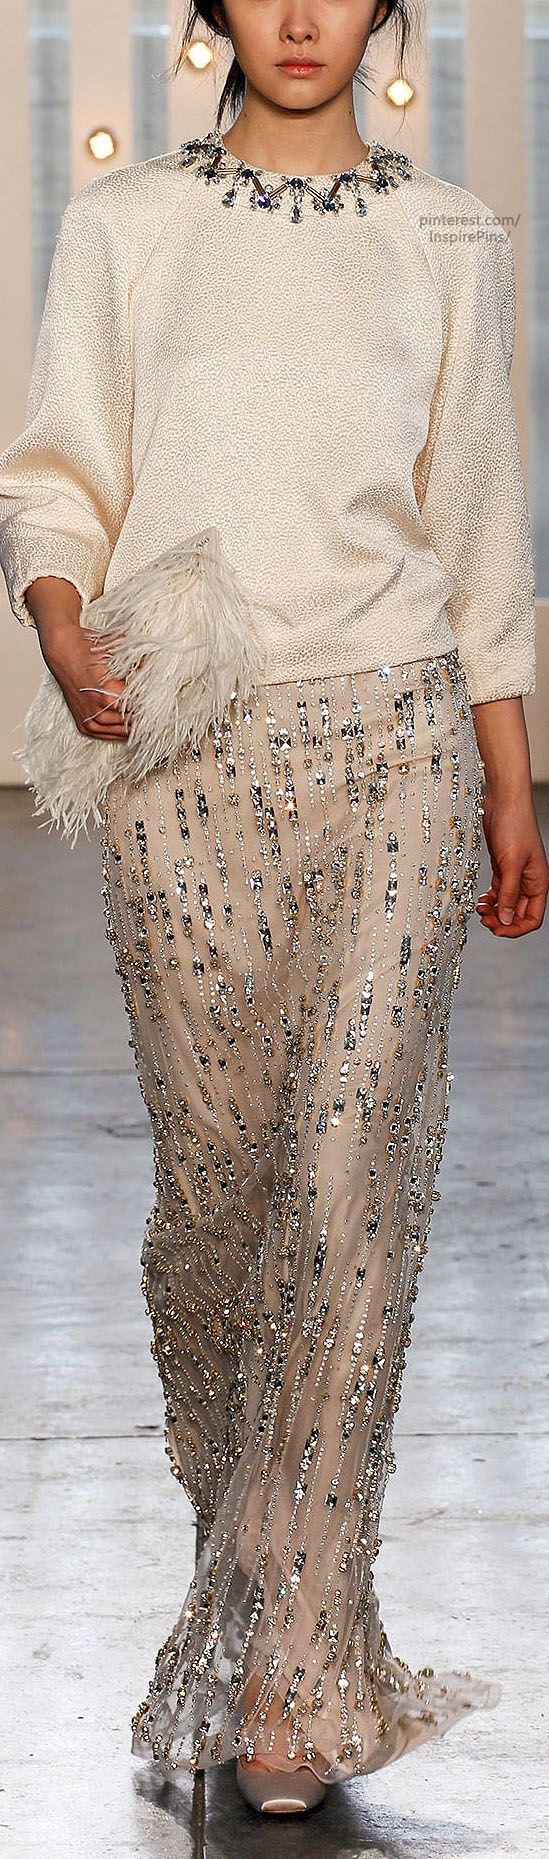 Fall 2014 RTW Jenny Packham  -Ok now let's take that skirt and make it into a full wedding dress because it's perfect. :)